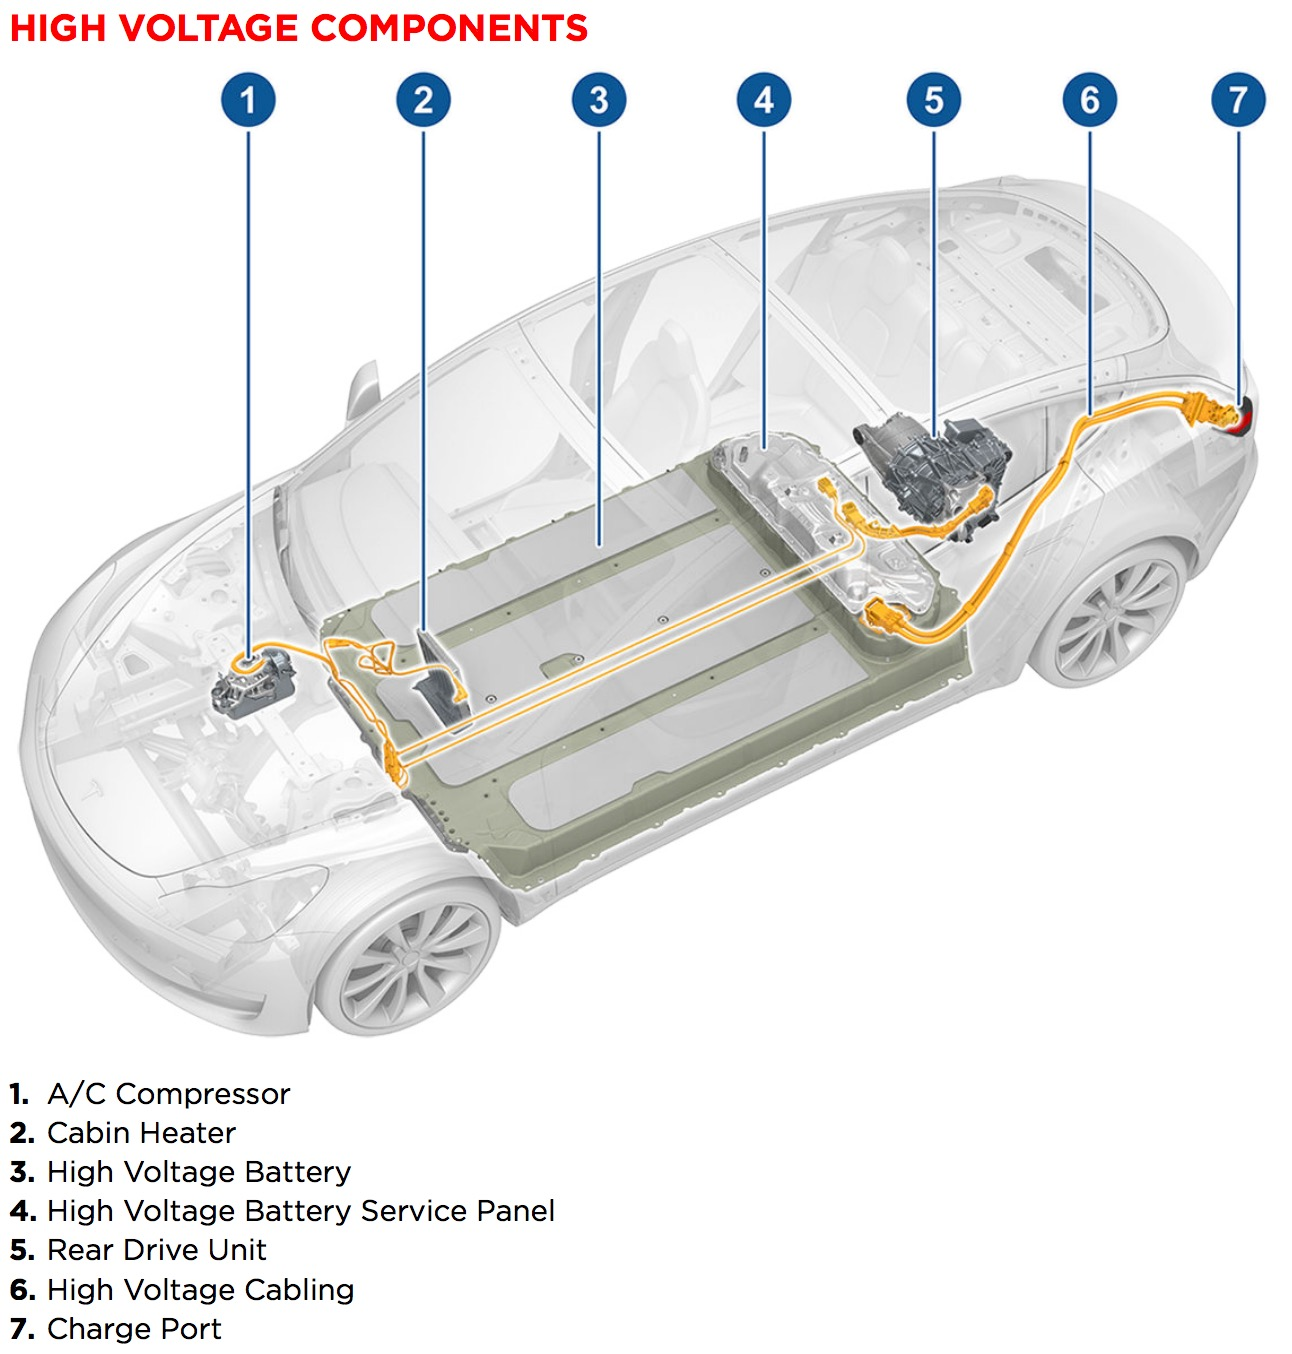 tesla model 3 interesting look at powertrain and chassis tesla free energy diagram tesla motor design diagram pics #15